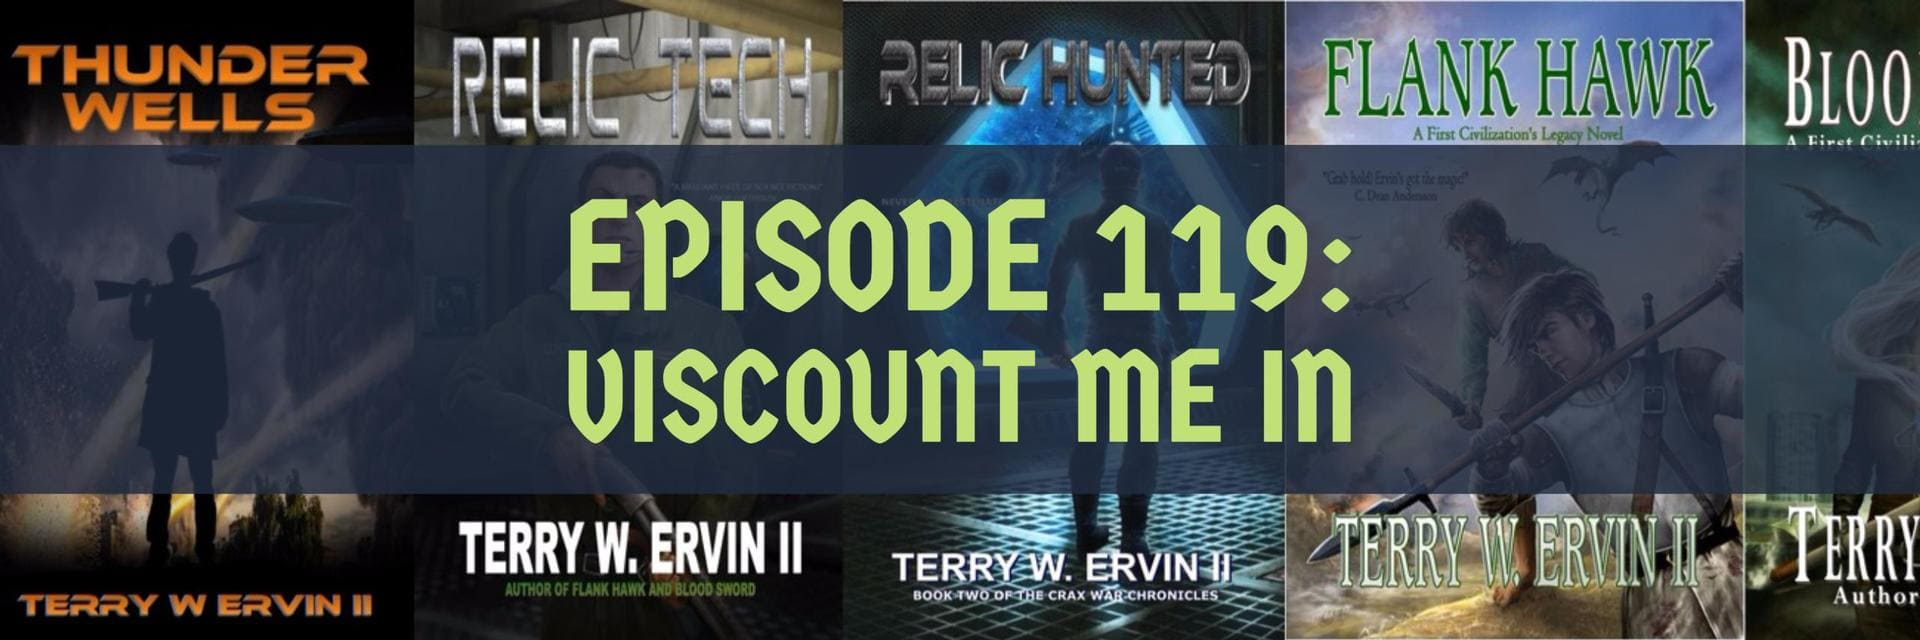 Episode 119: Viscount Me In, an Interview with Terry W Ervin II